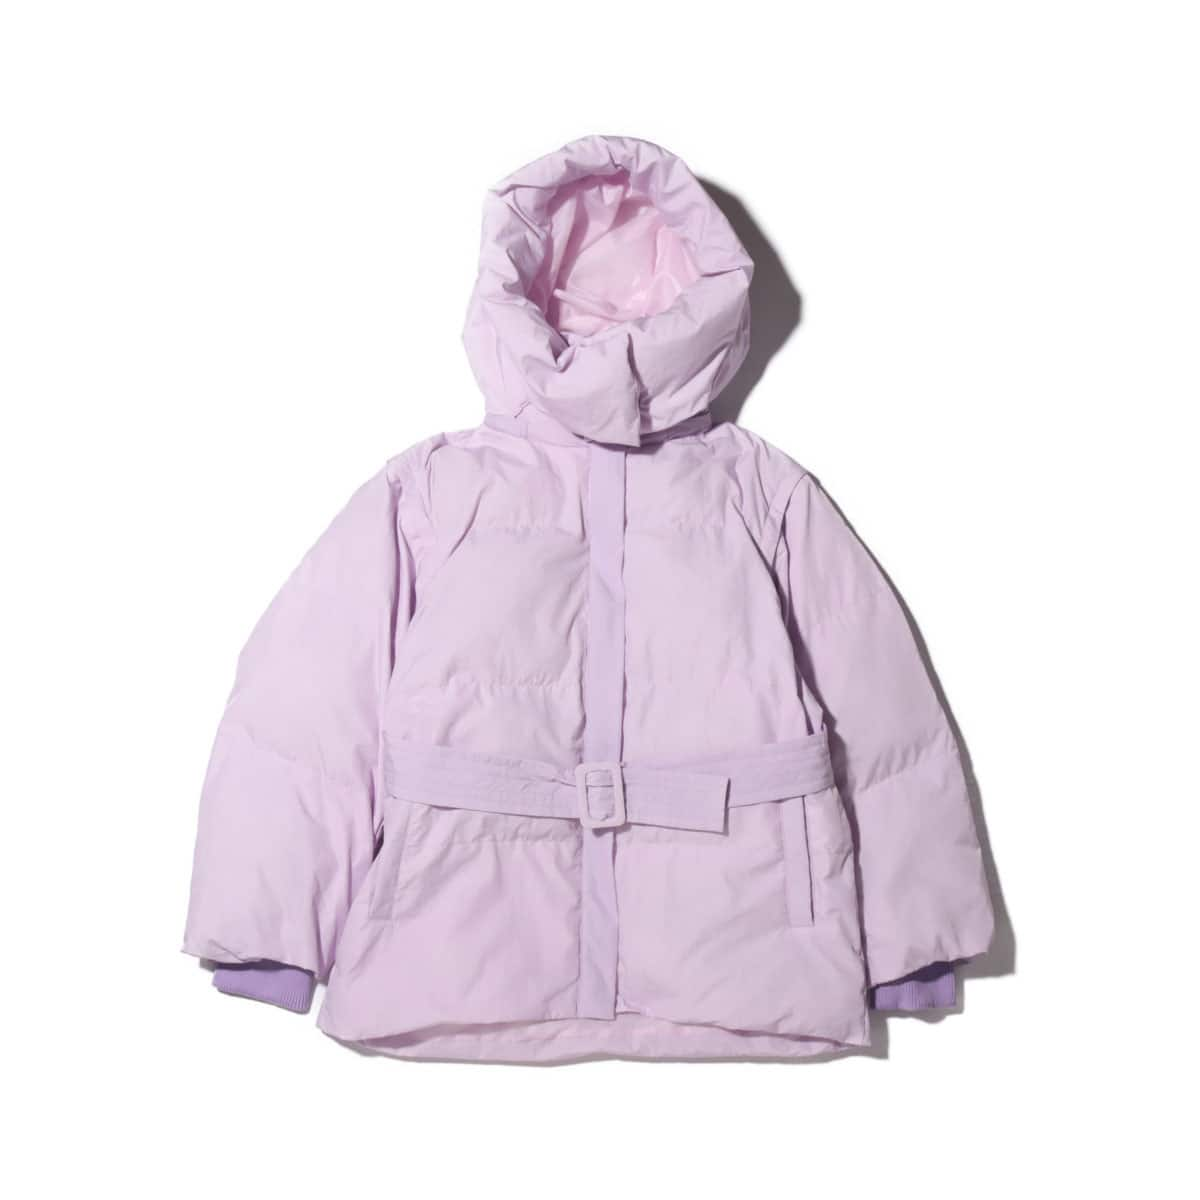 RIEHATA × atmos pink 5way ダウンジャケット PURPLE 20FA-I_photo_large